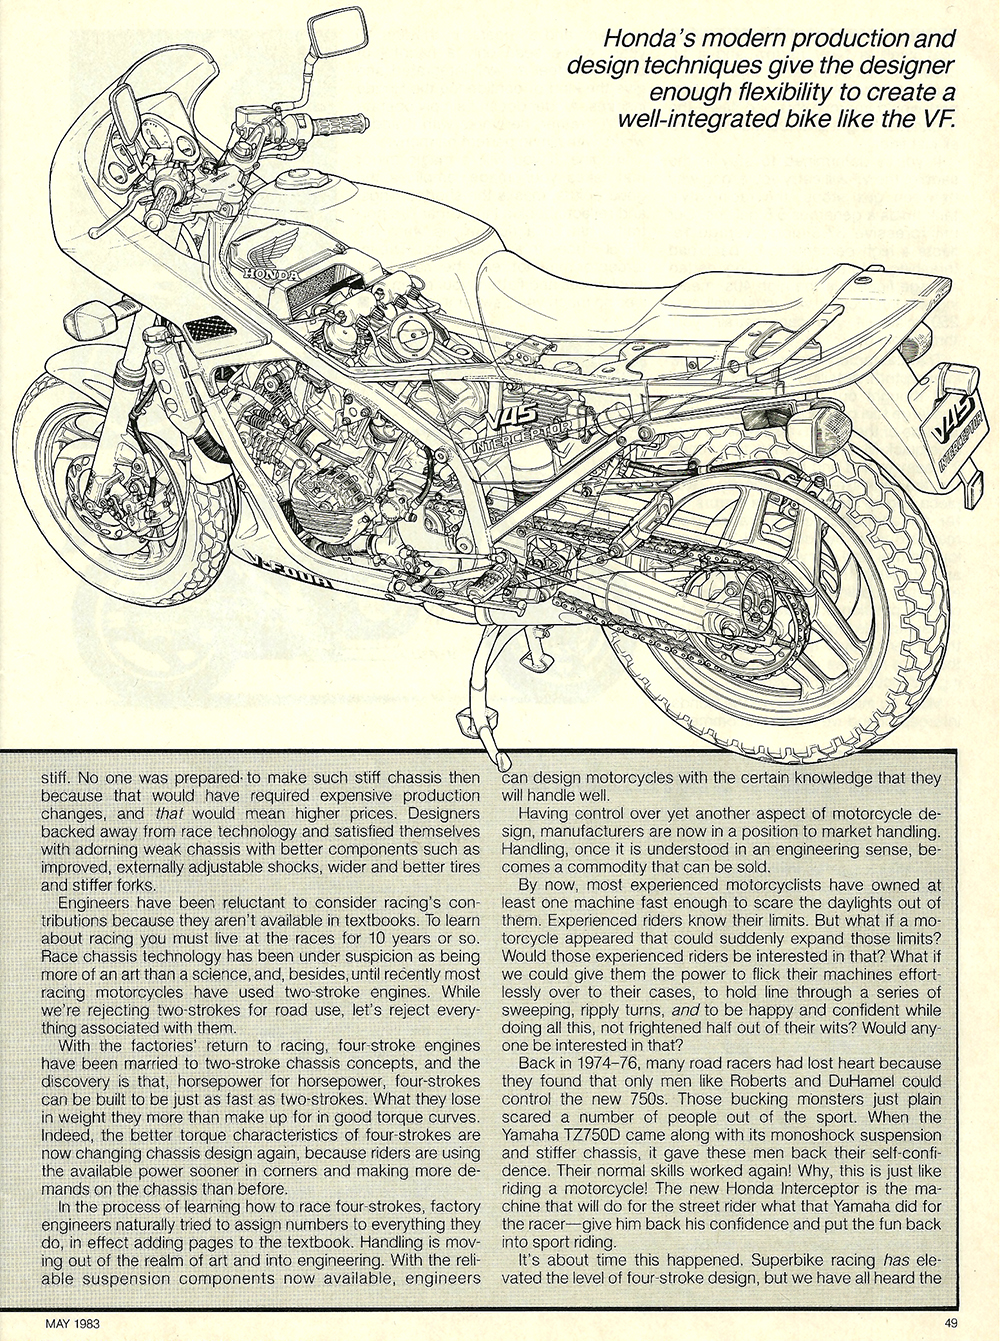 1983 Honda V45 Interceptor road test 09.jpg